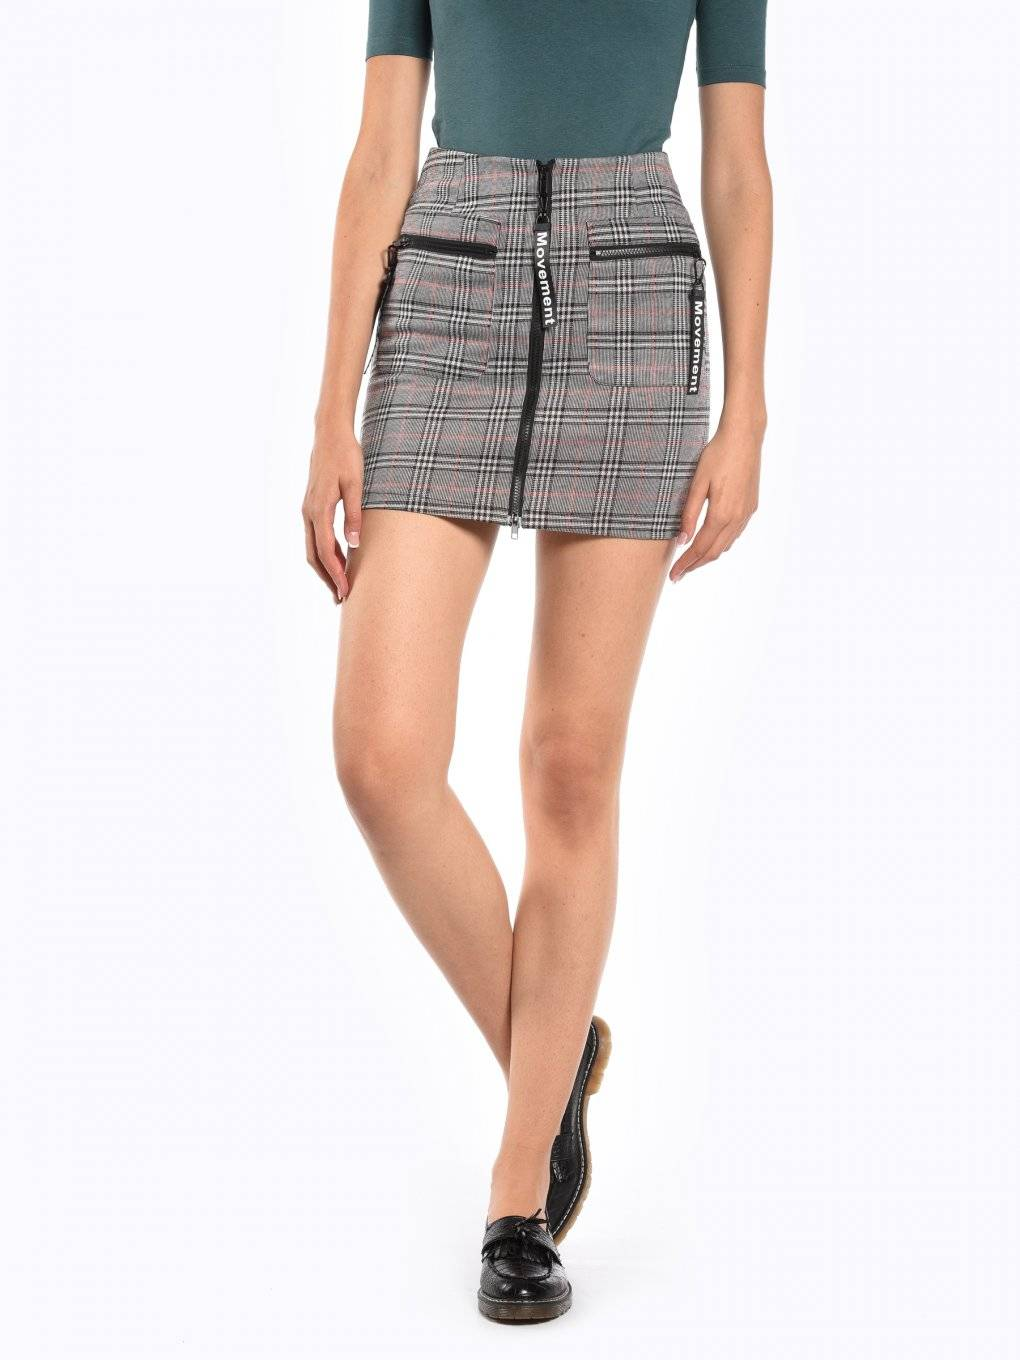 Plaid zip-up skirt with pockets